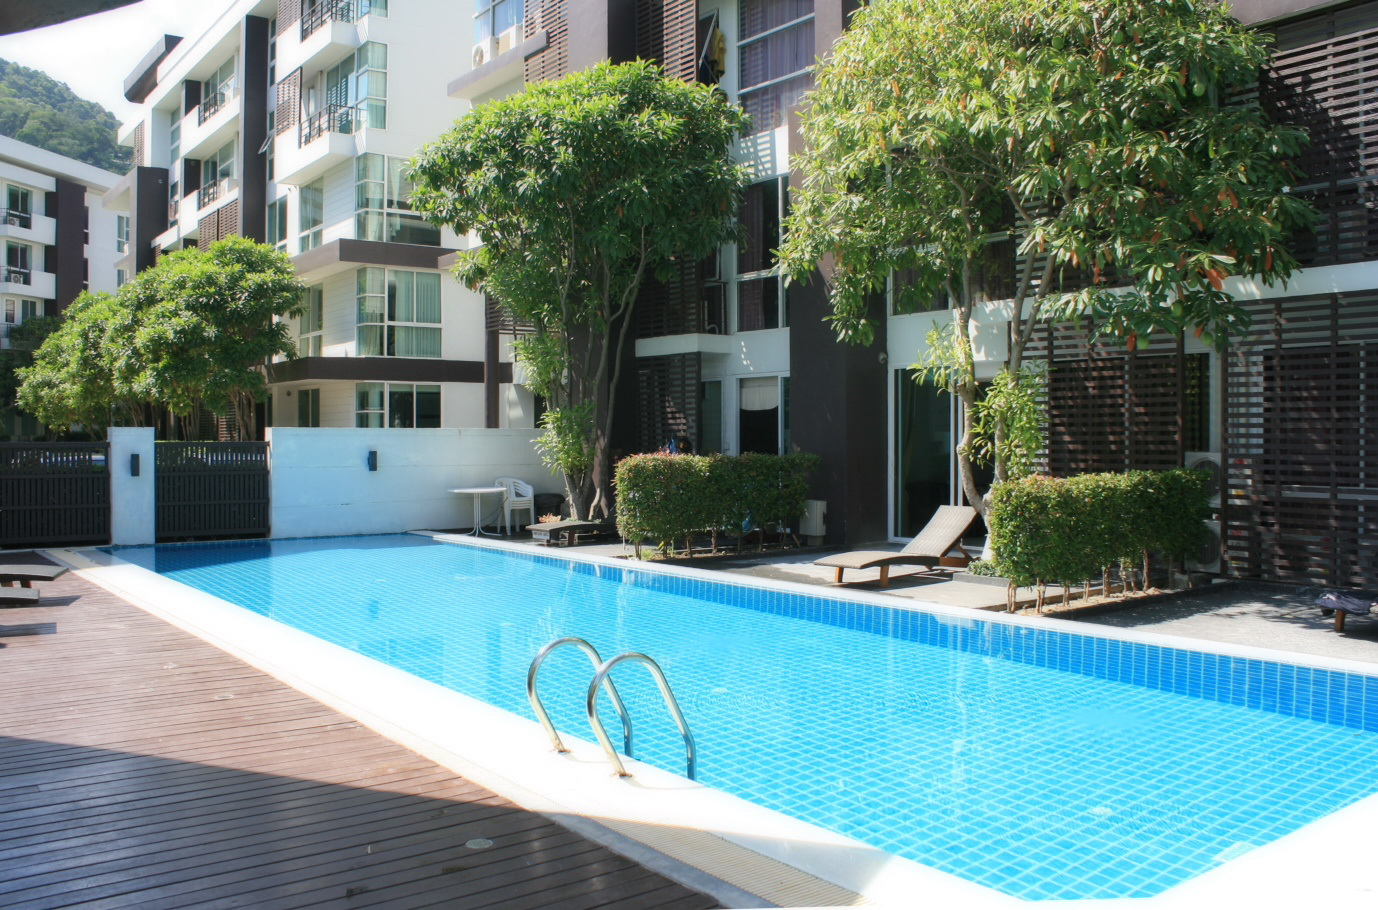 Condo for sale FREEHOLD – Patong Phuket